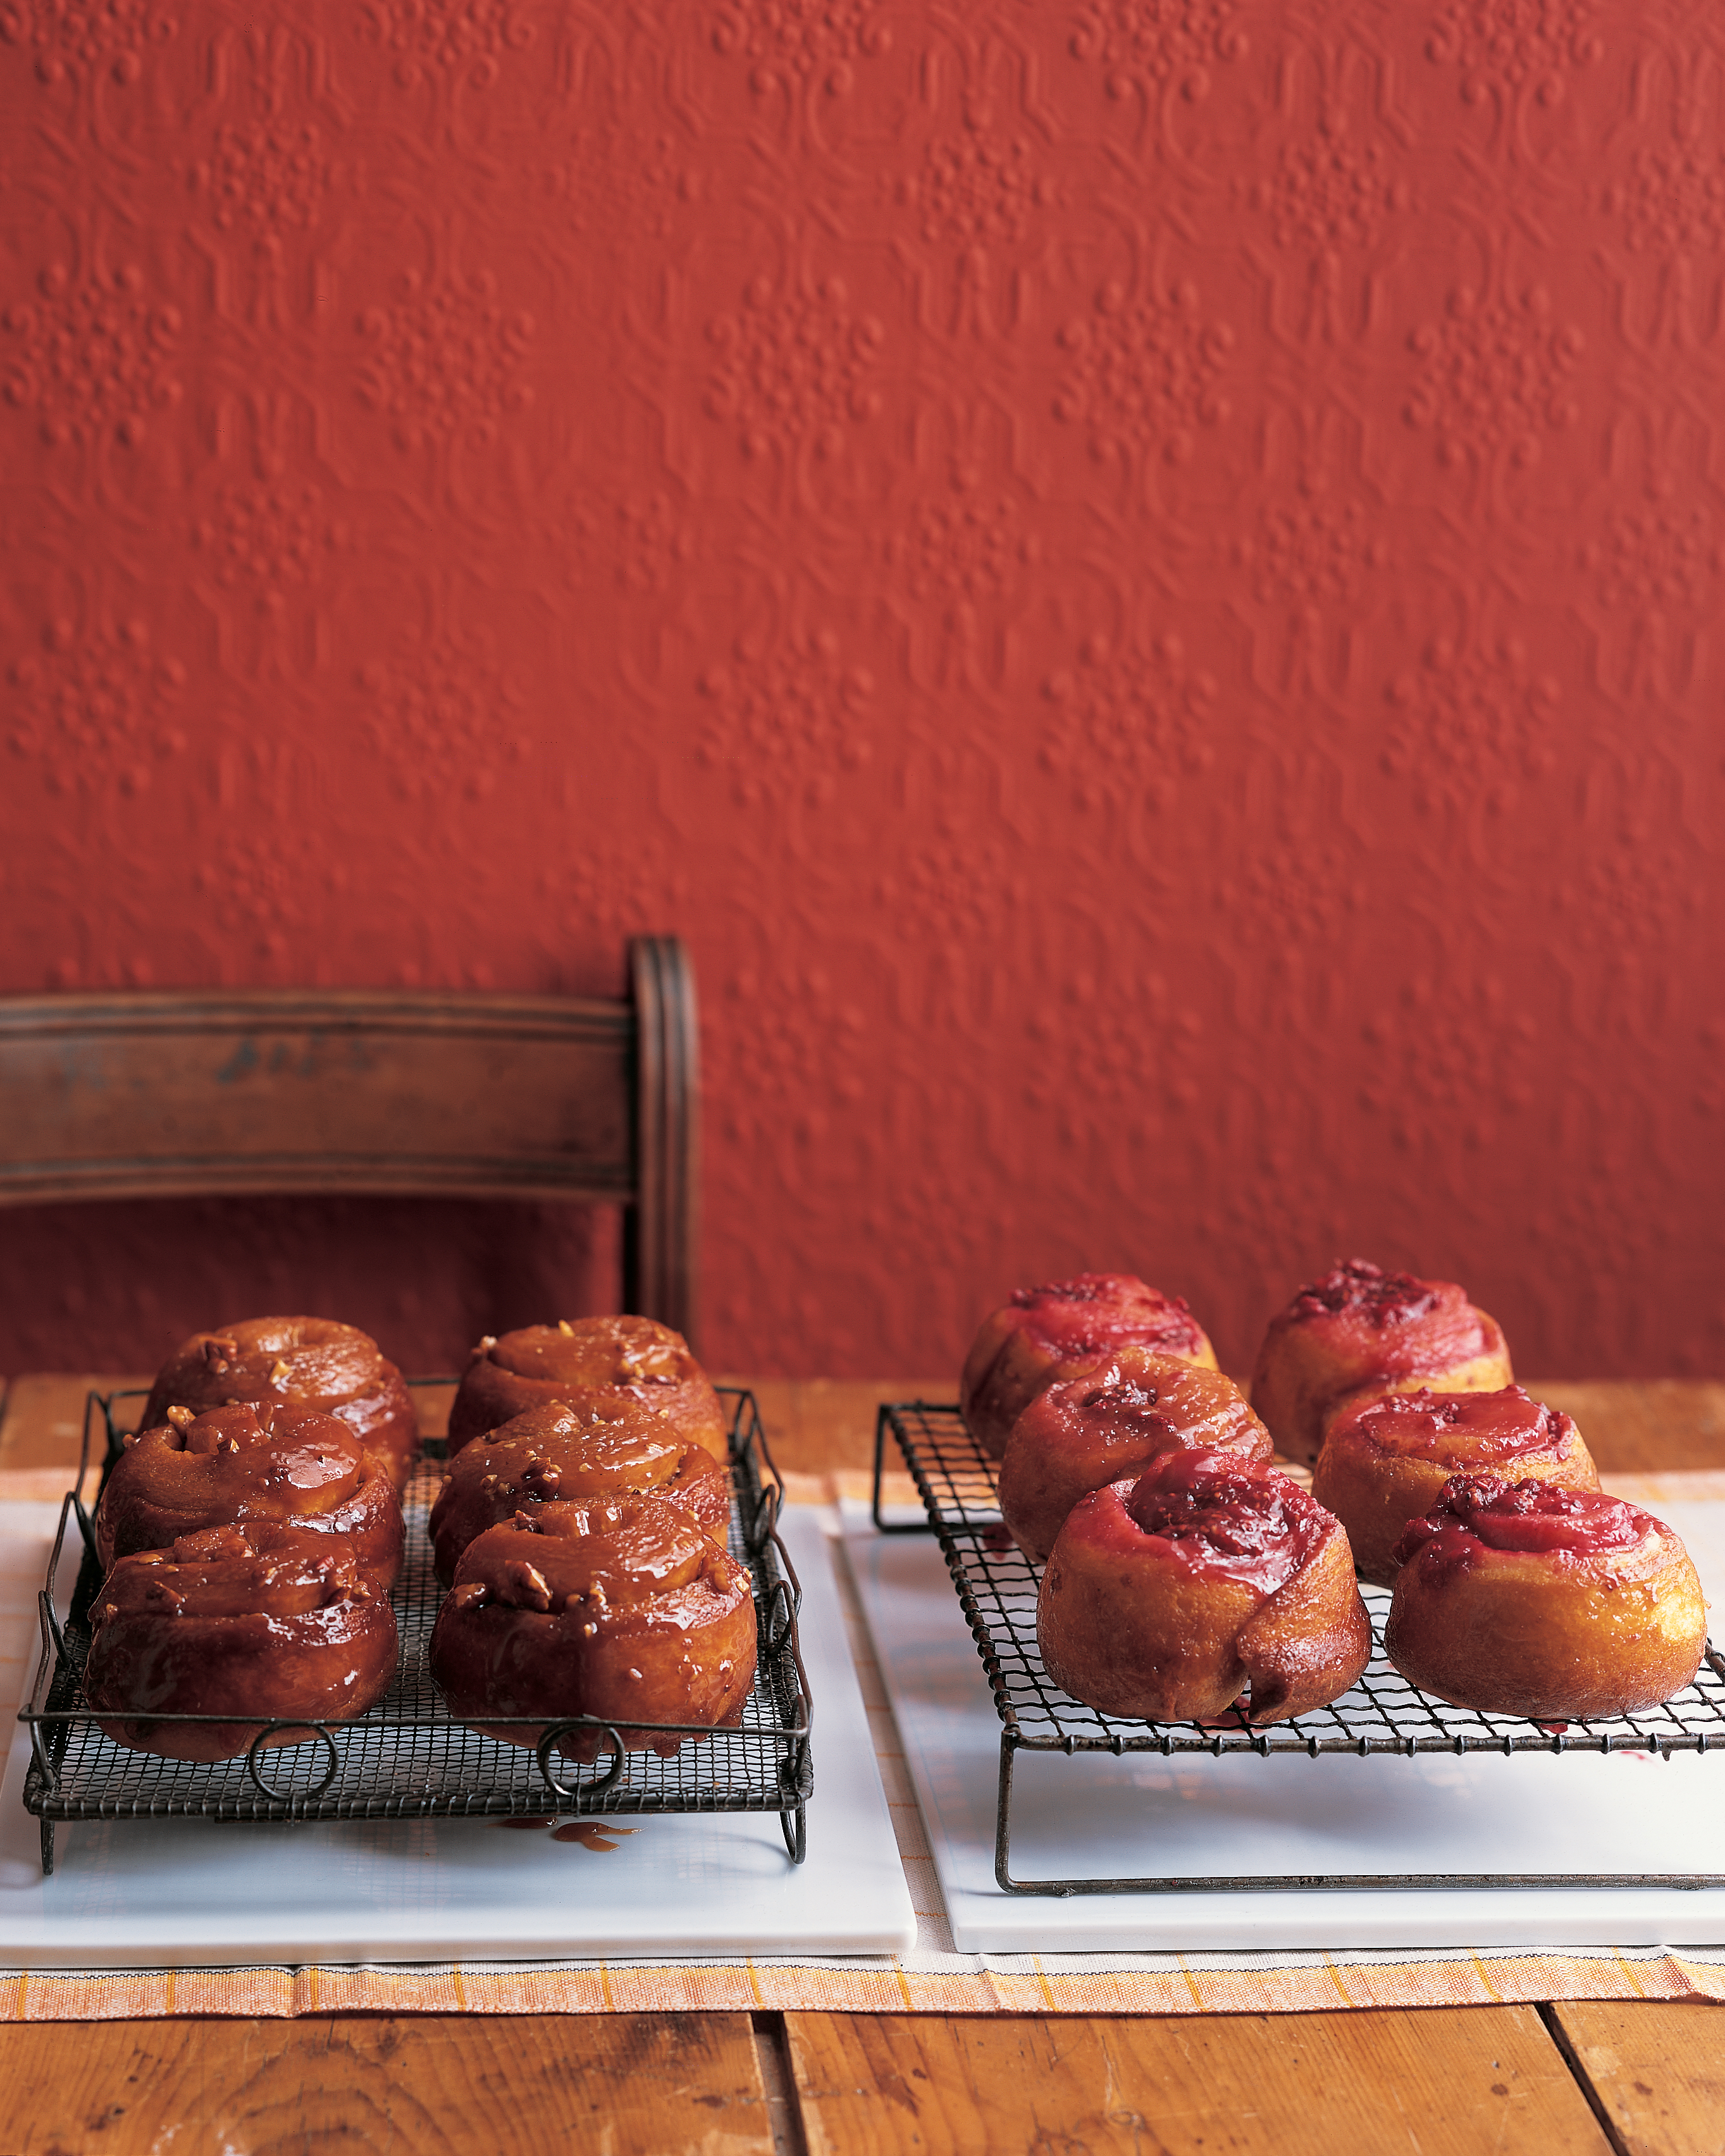 Sticky Buns with Various Fillings